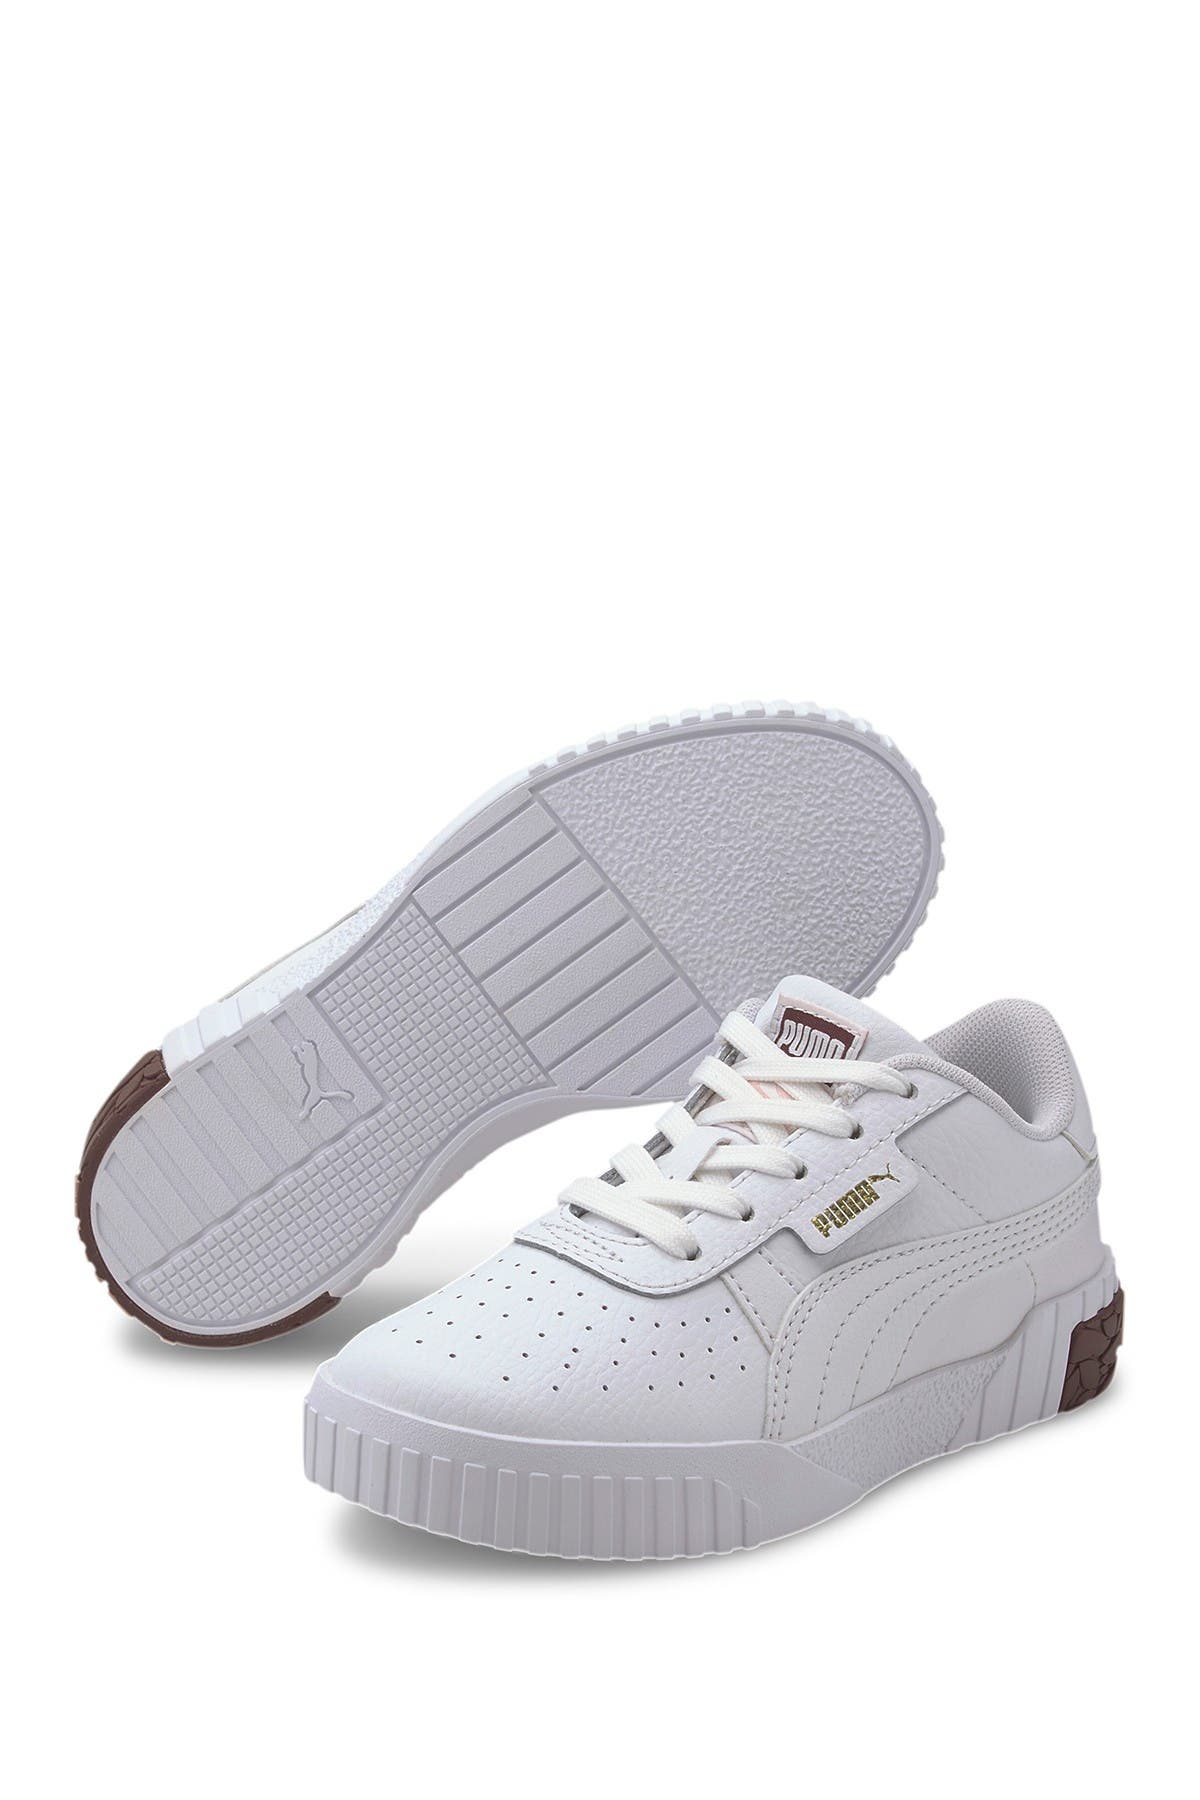 Image of PUMA Cali Perforated Leather Sneaker